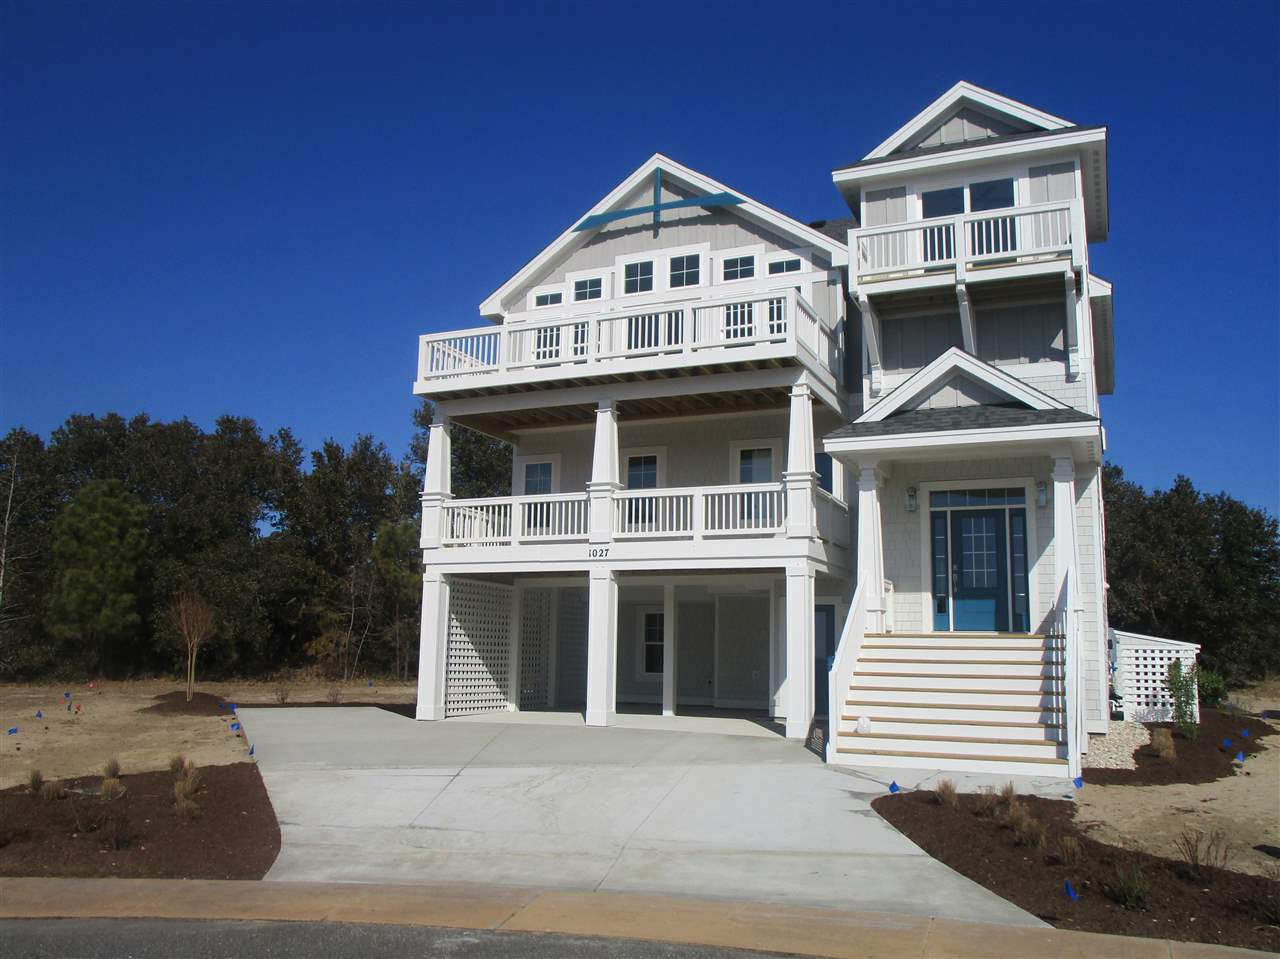 1027 Cruz Bay Lane, Corolla, NC 27927, 5 Bedrooms Bedrooms, ,4 BathroomsBathrooms,Residential,For sale,Cruz Bay Lane,97829